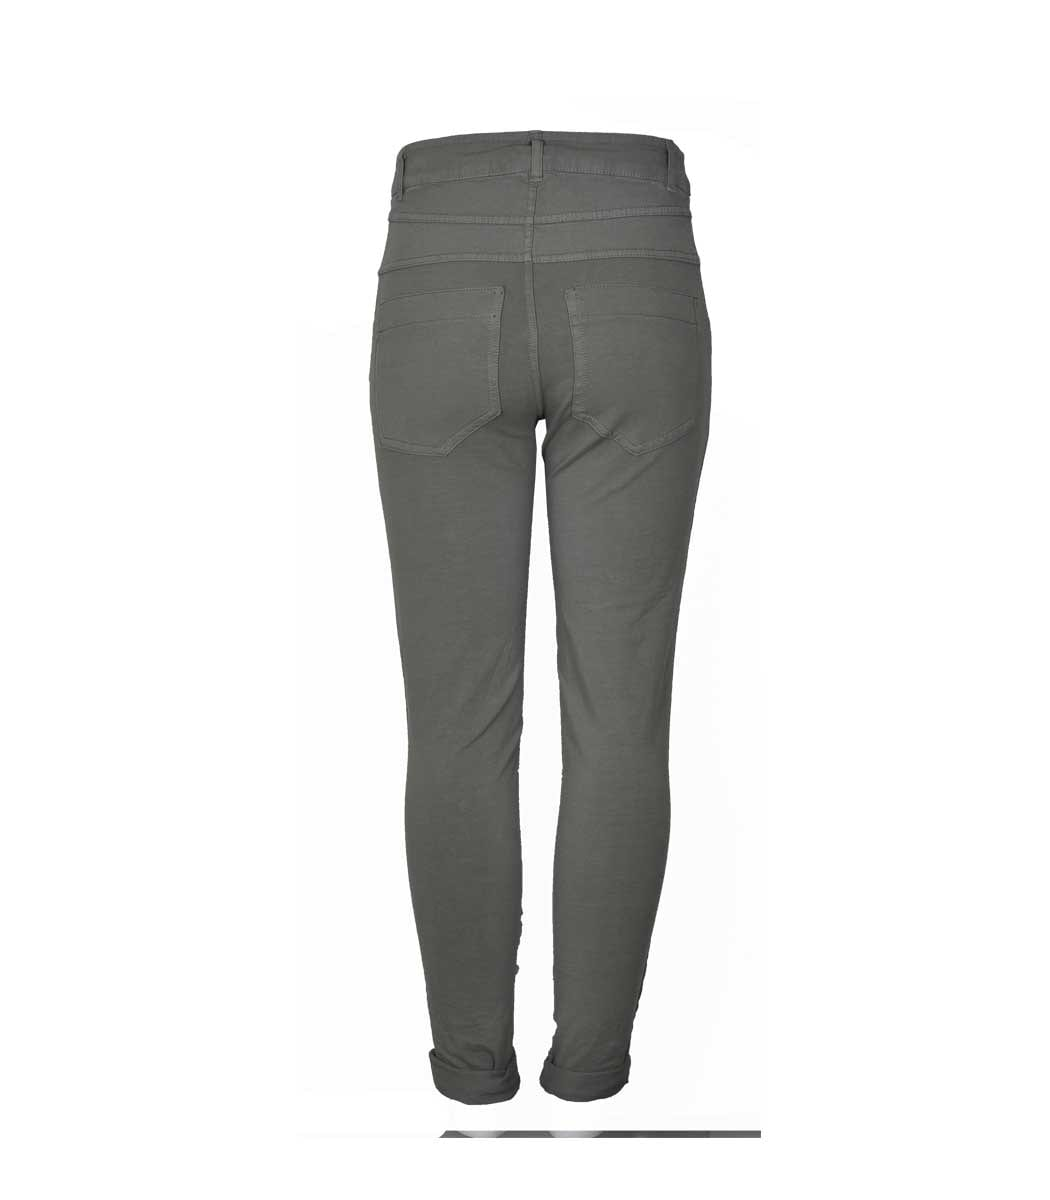 2 textured 4 button pants